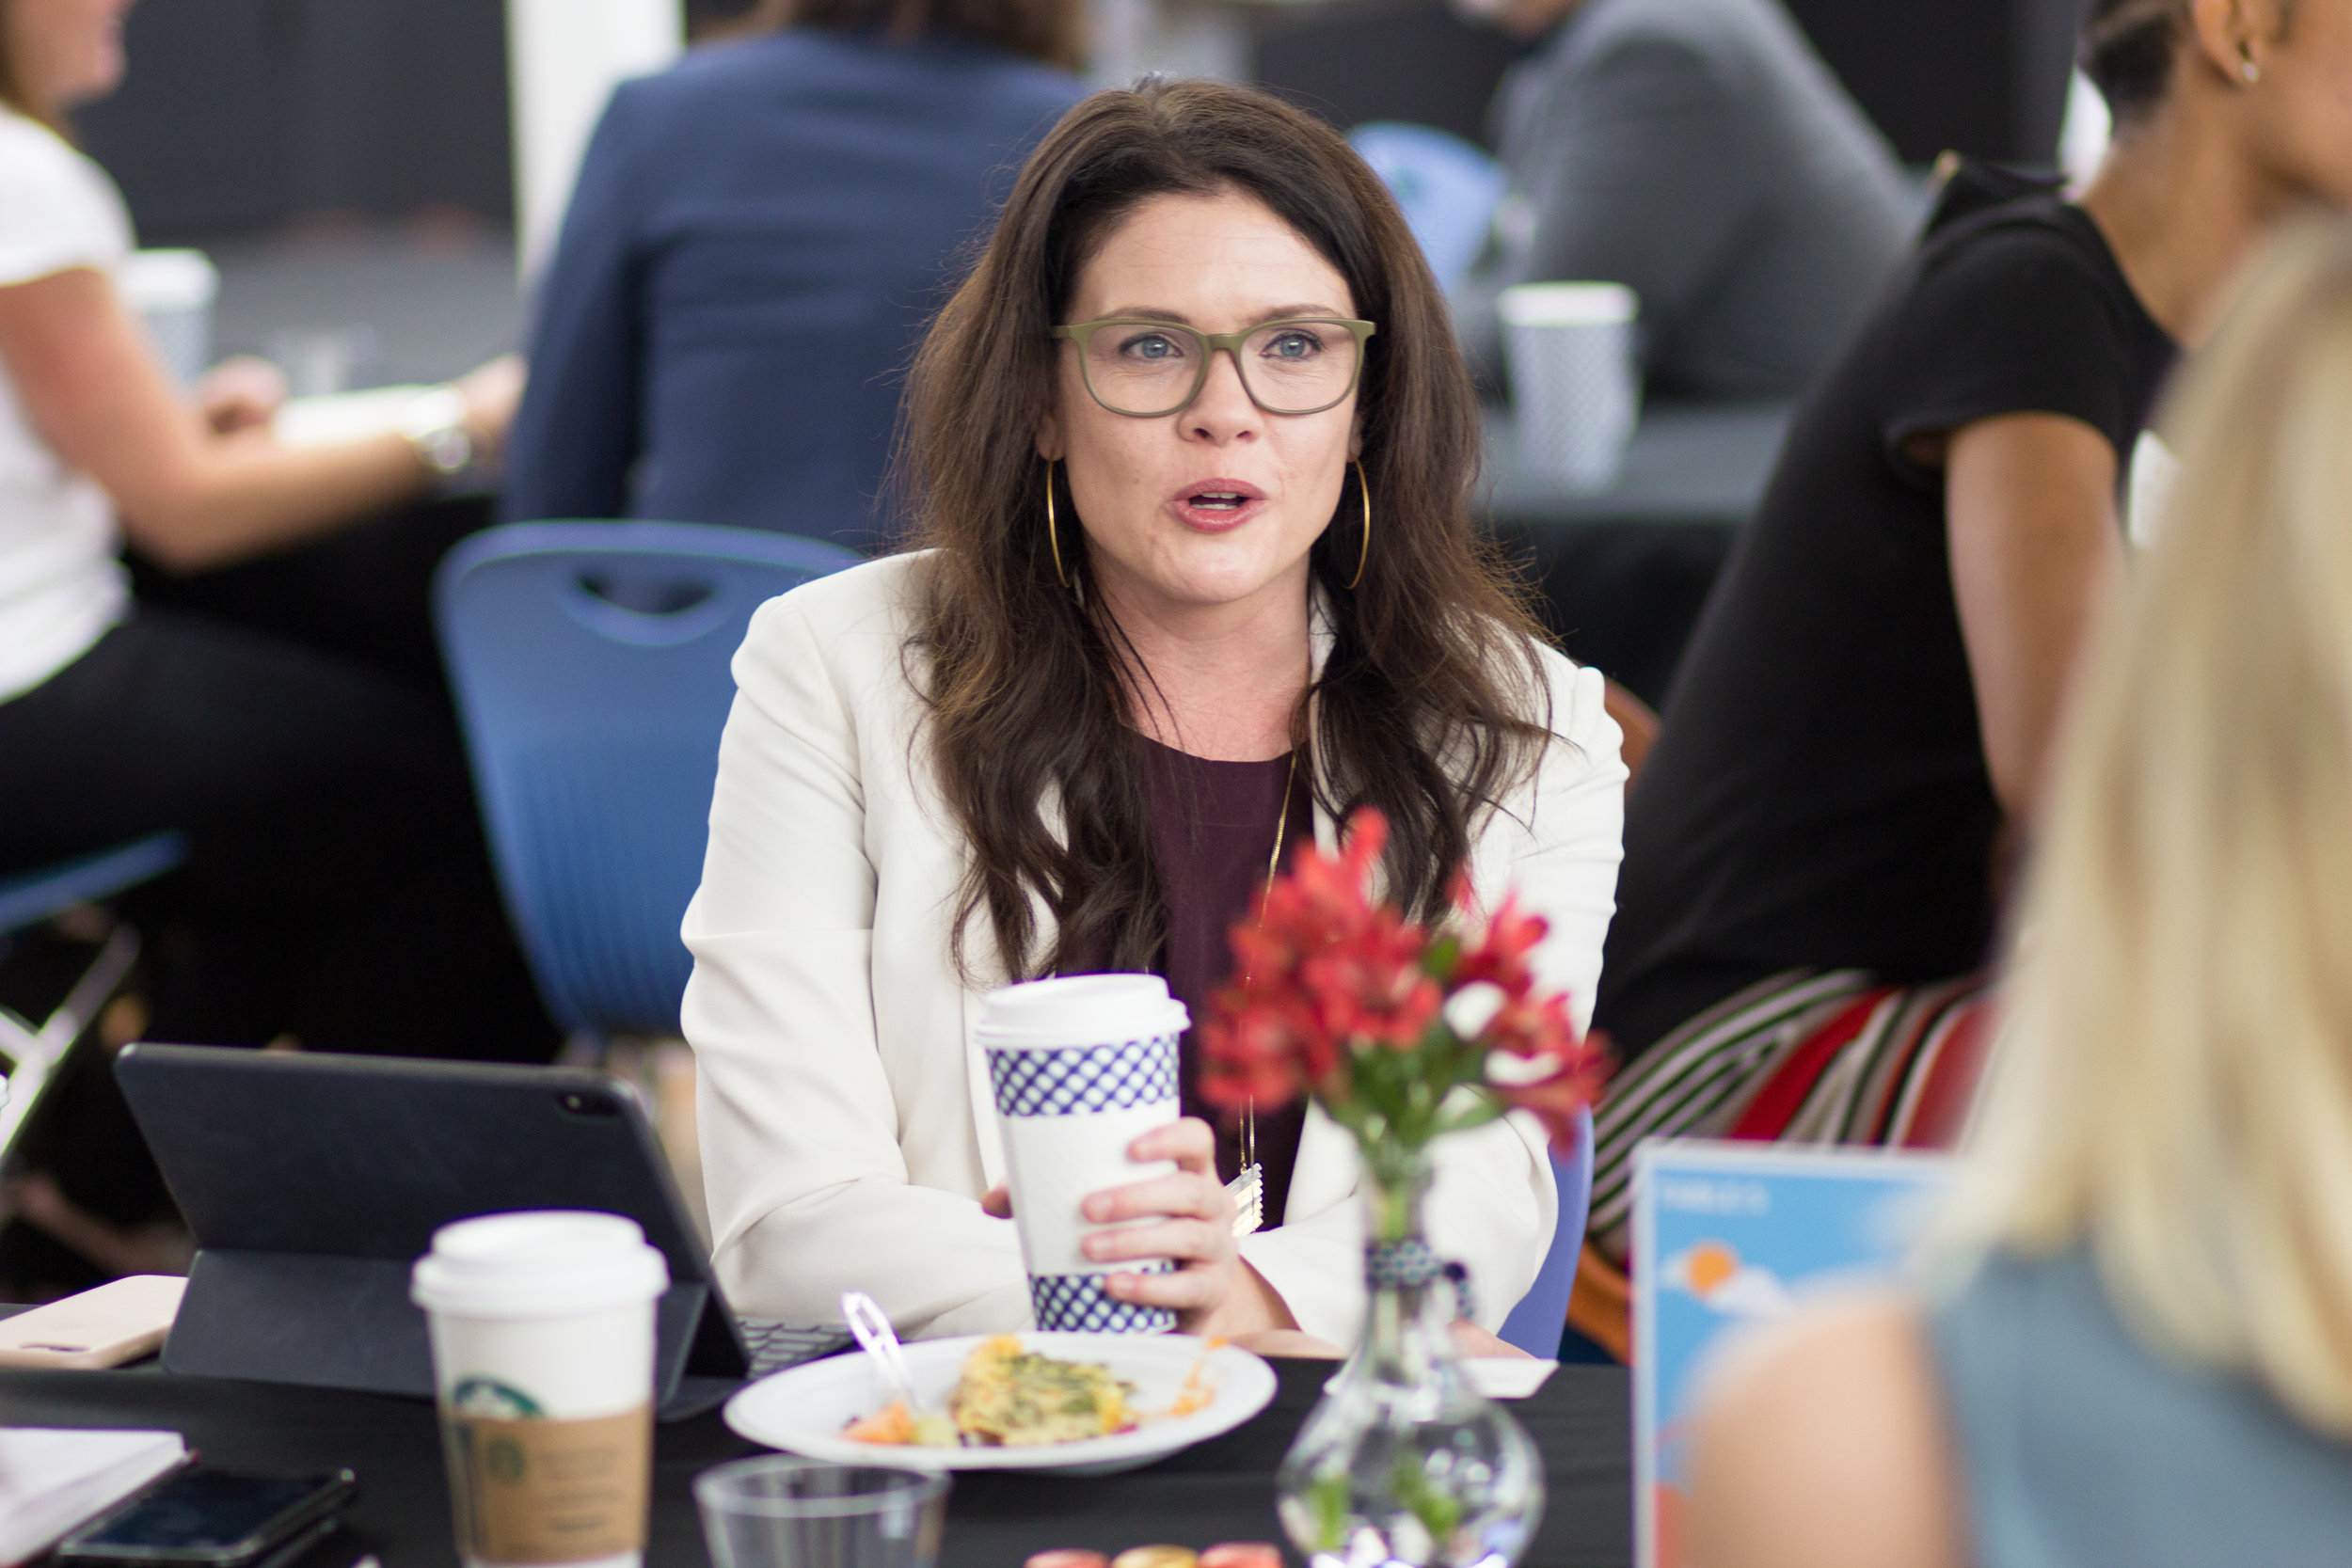 AgencySparks_#MarketersBreakfast_5.2019-0453.jpg